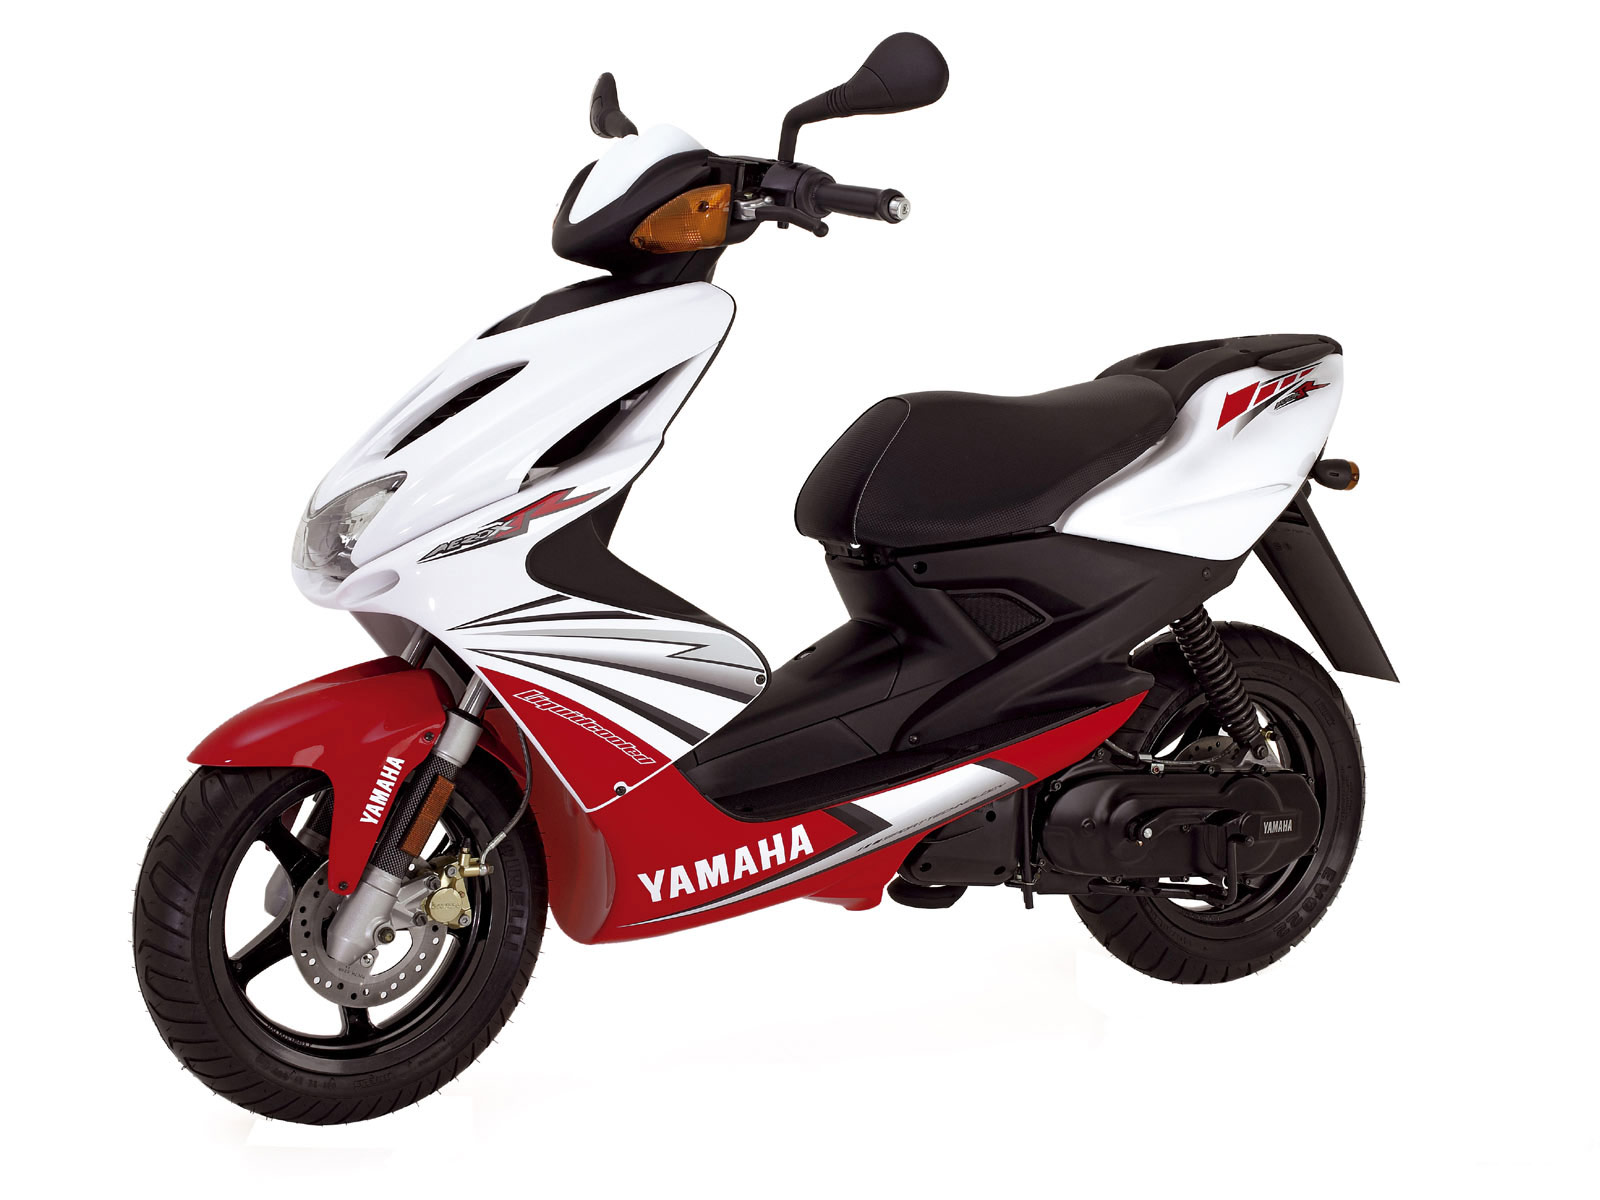 2007 Yamaha Aerox R Scooter Pictures Accident Lawyers